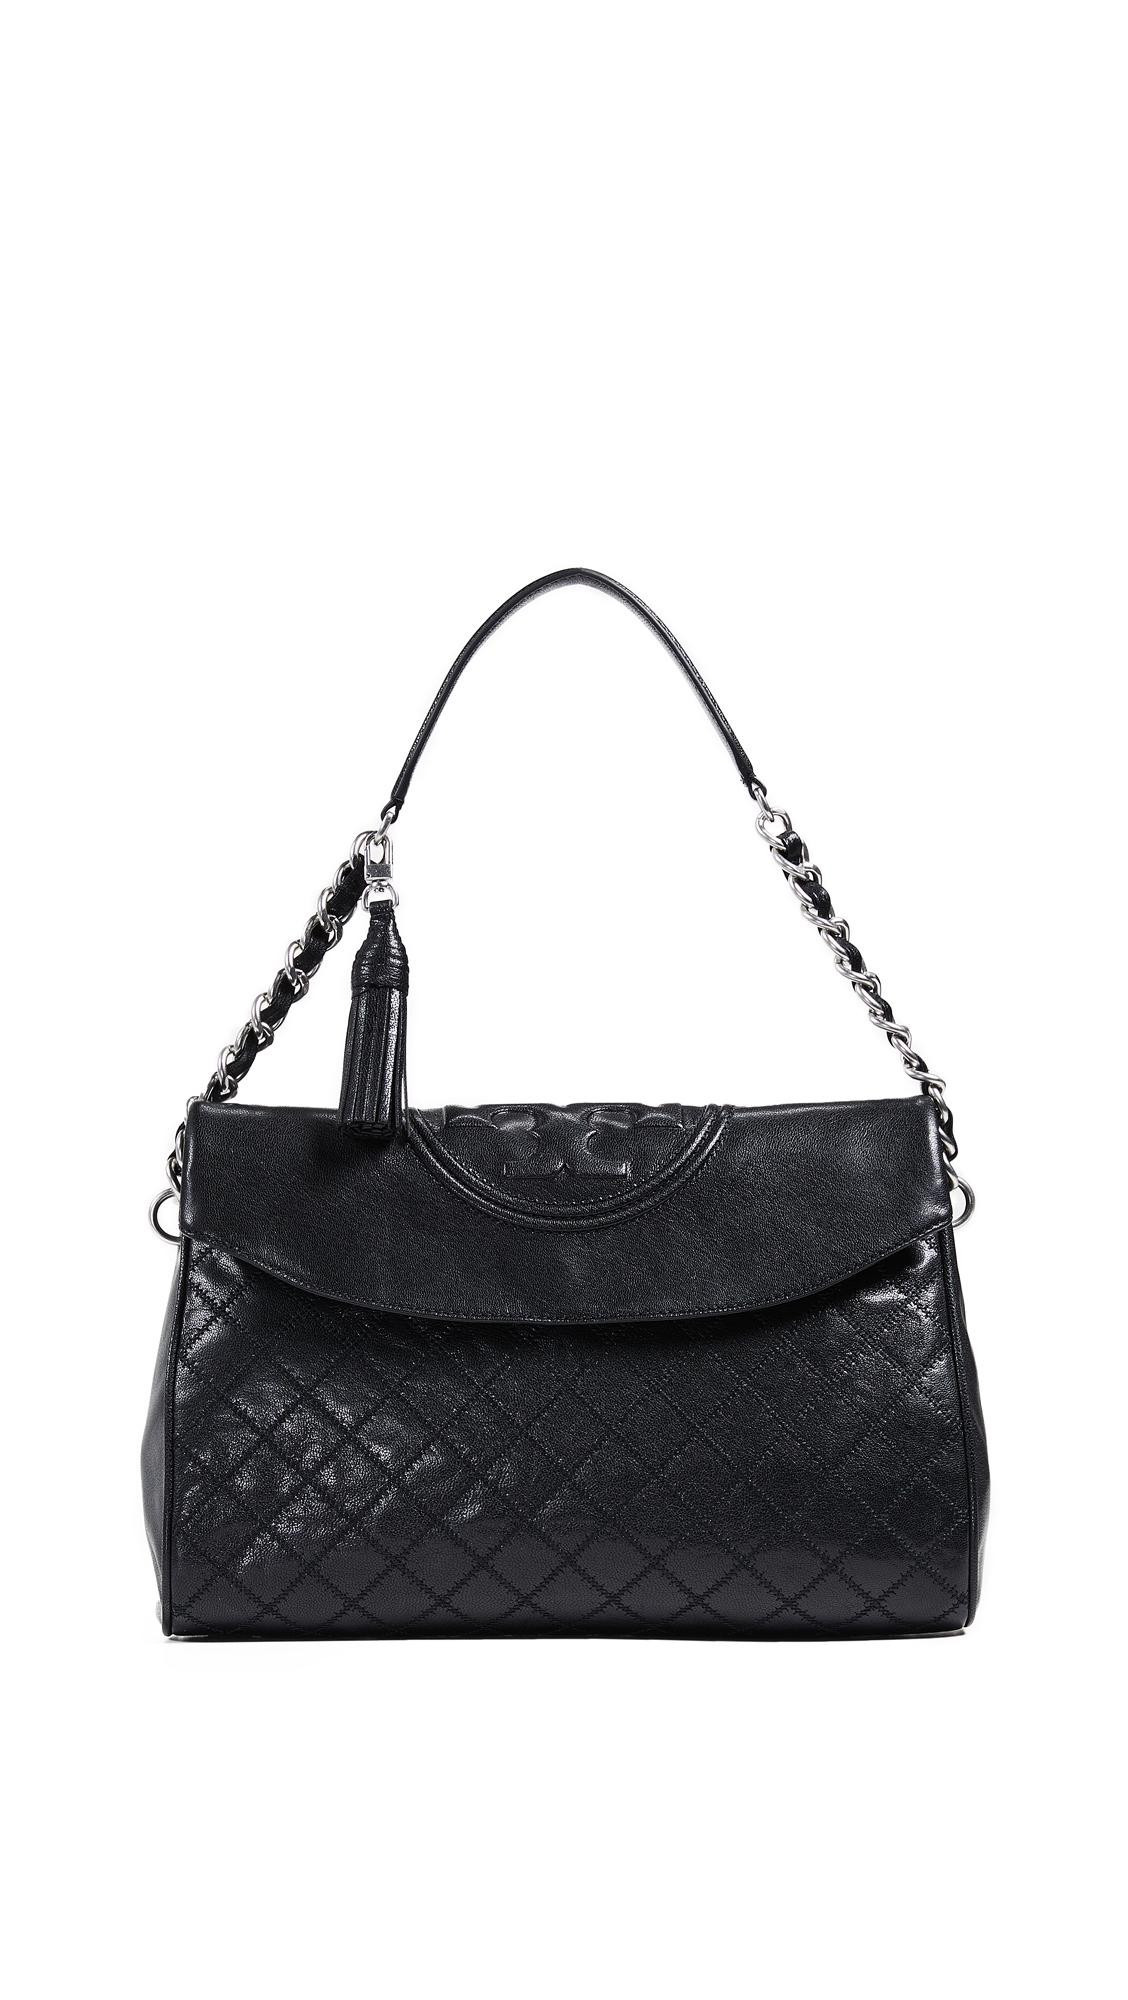 8f7e9733c5f Tory Burch Fleming Distressed Leather Fold Over Hobo In Black